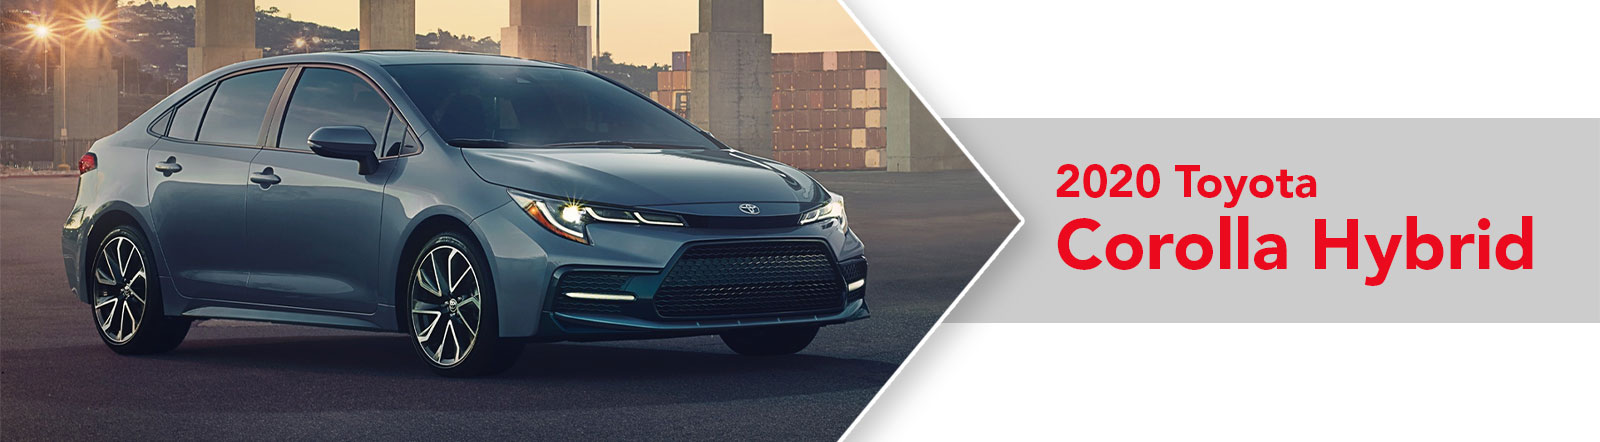 All-New 2020 Toyota Corolla Hybrid For Sale in Metairie, LA